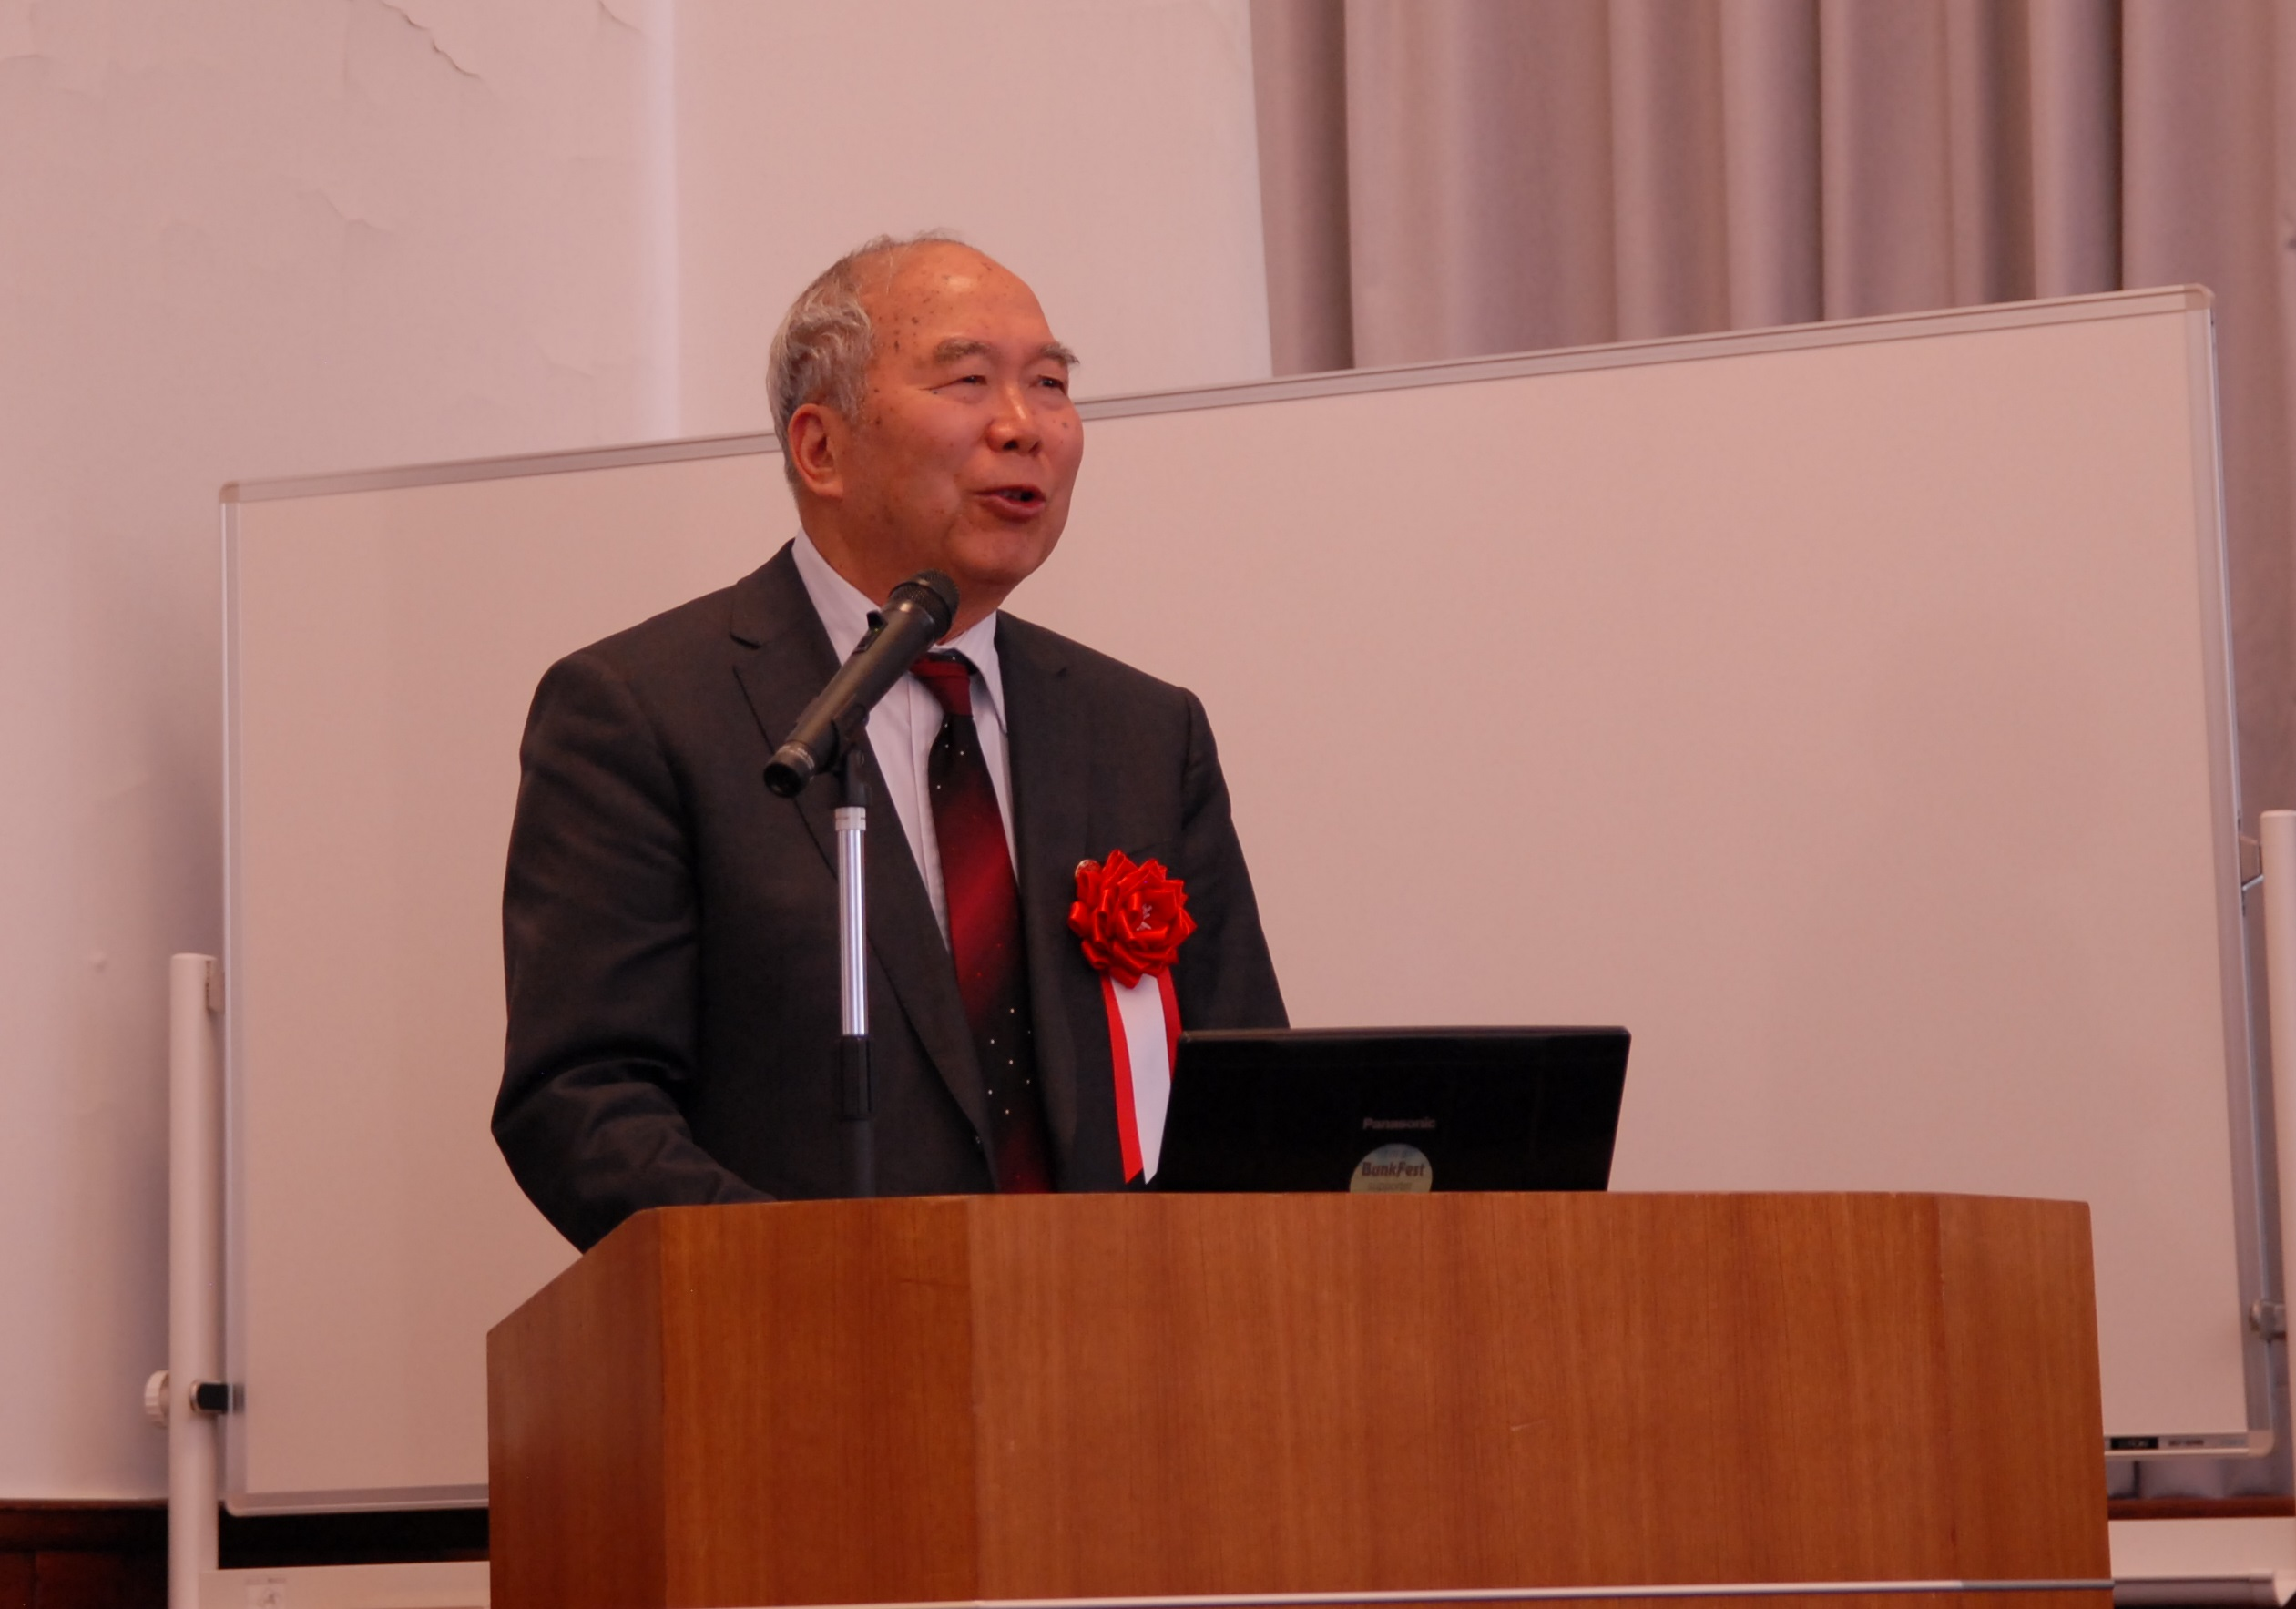 Professor and Member of Chinese Academy of Engineering, Hao Jiming